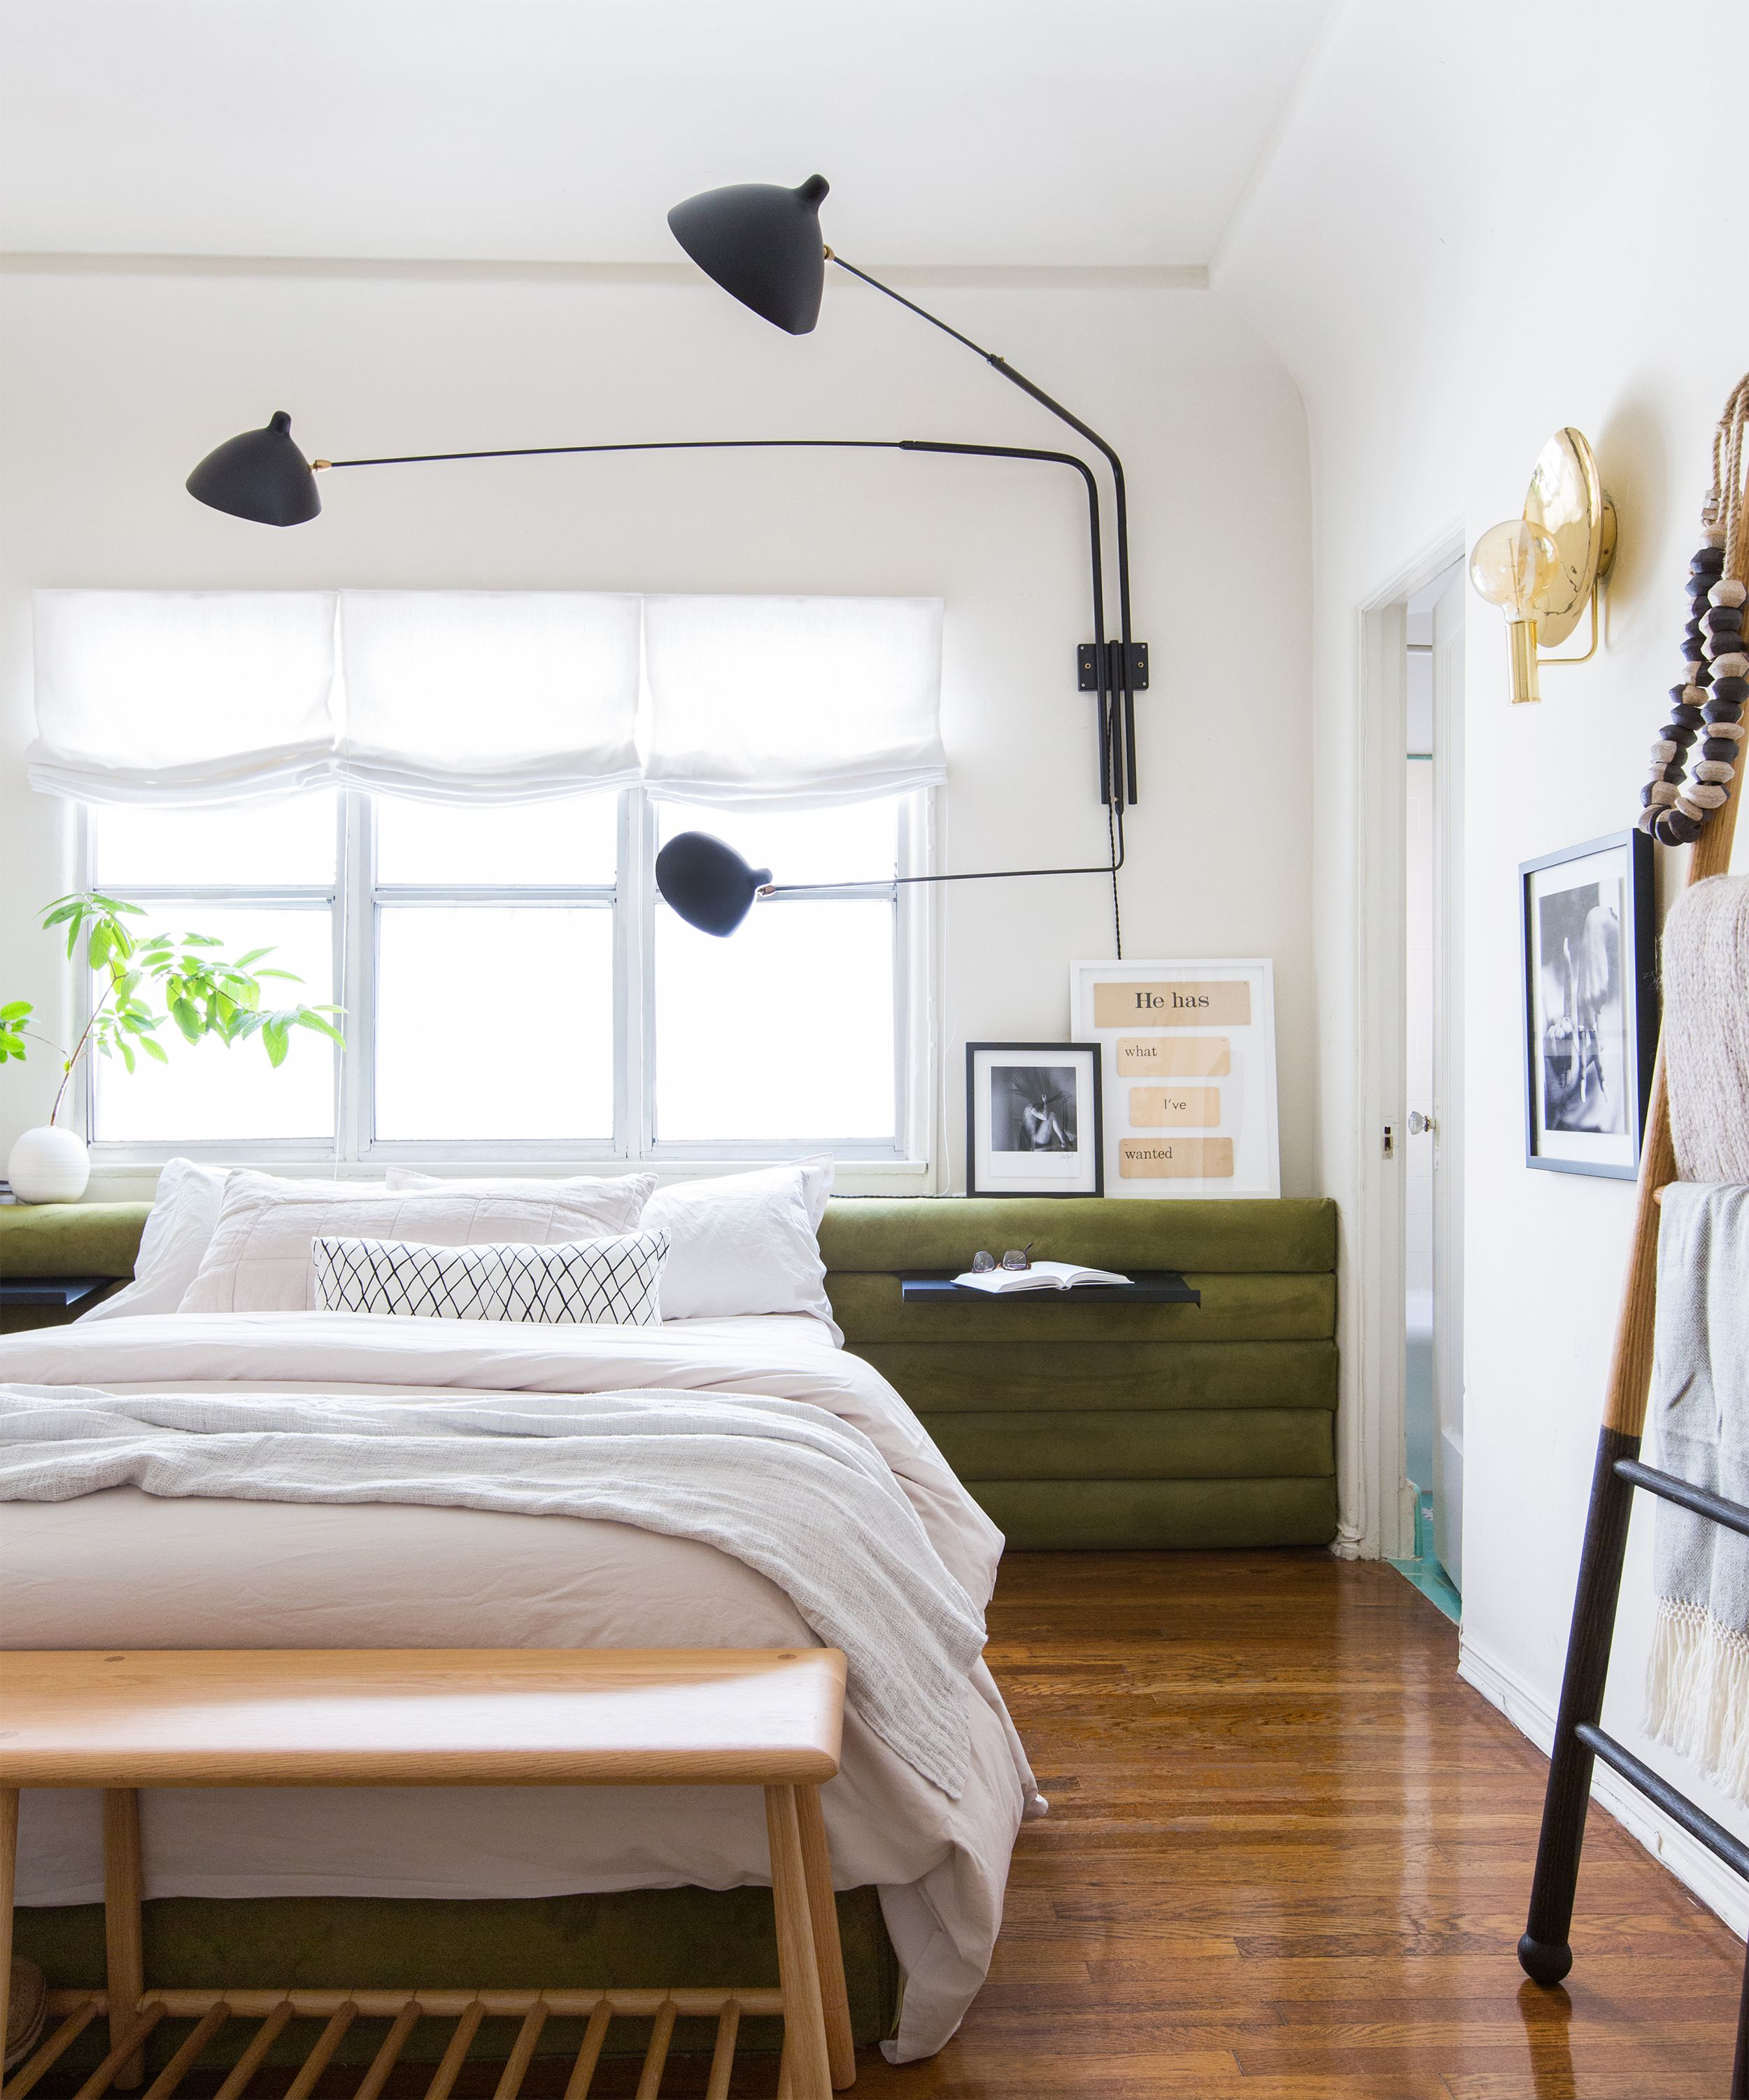 The 6 Living Room Design Mistakes To Avoid At All Costs: 5 Small Bedroom Mistakes Everyone Makes (and How To Fix Them